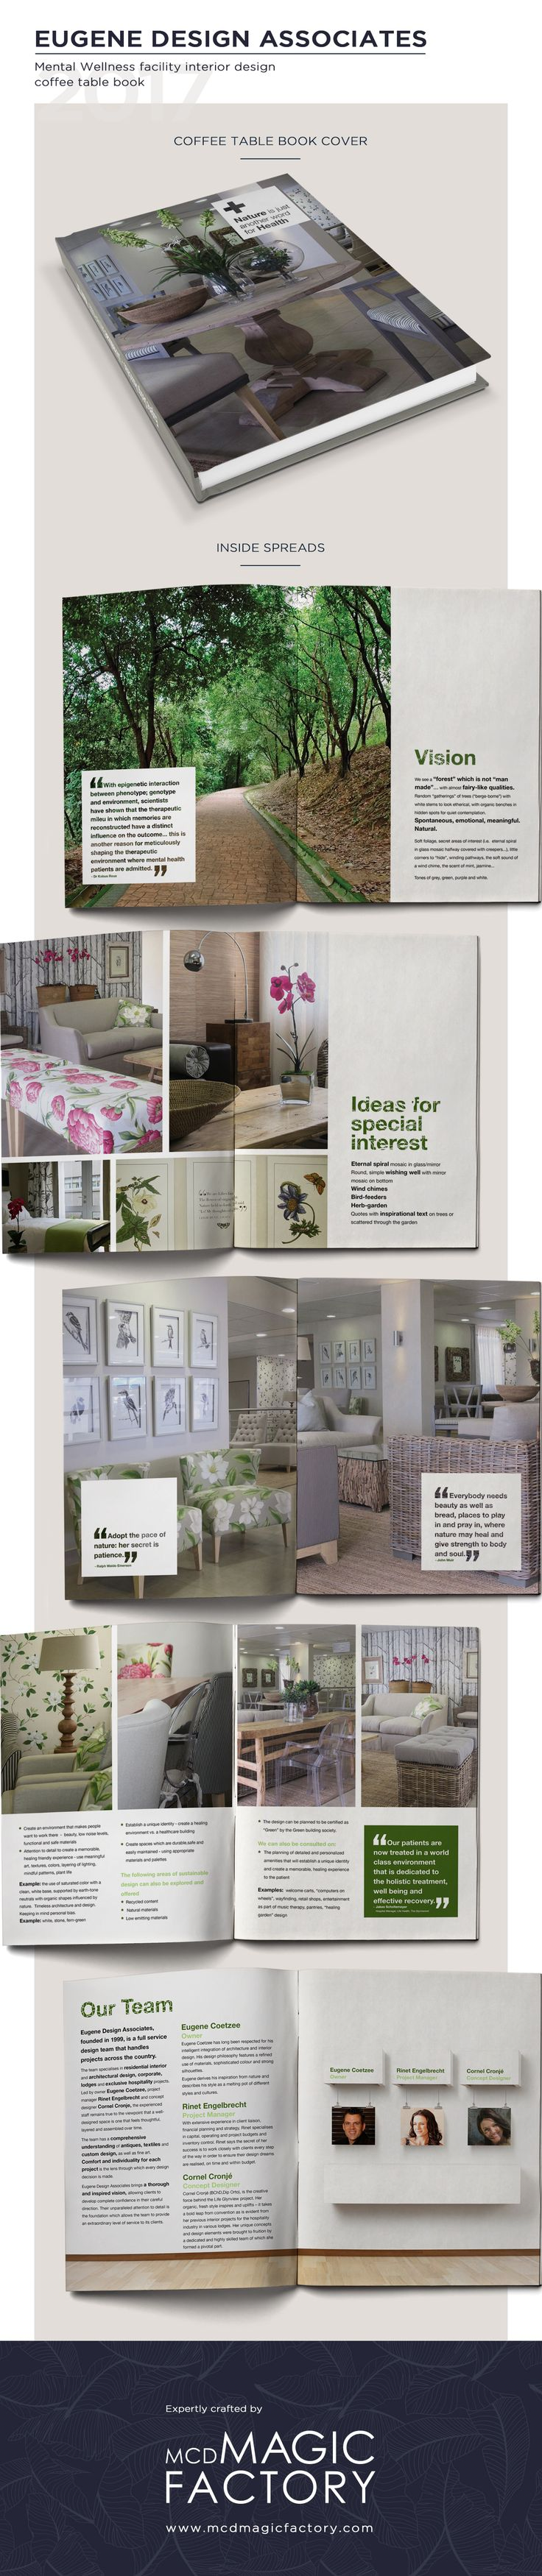 Client: Eugene Design Associates | Year: 2010 | Design of a coffee table book a mental wellness centre. The book doubled as a great way for the company to showcase their work.